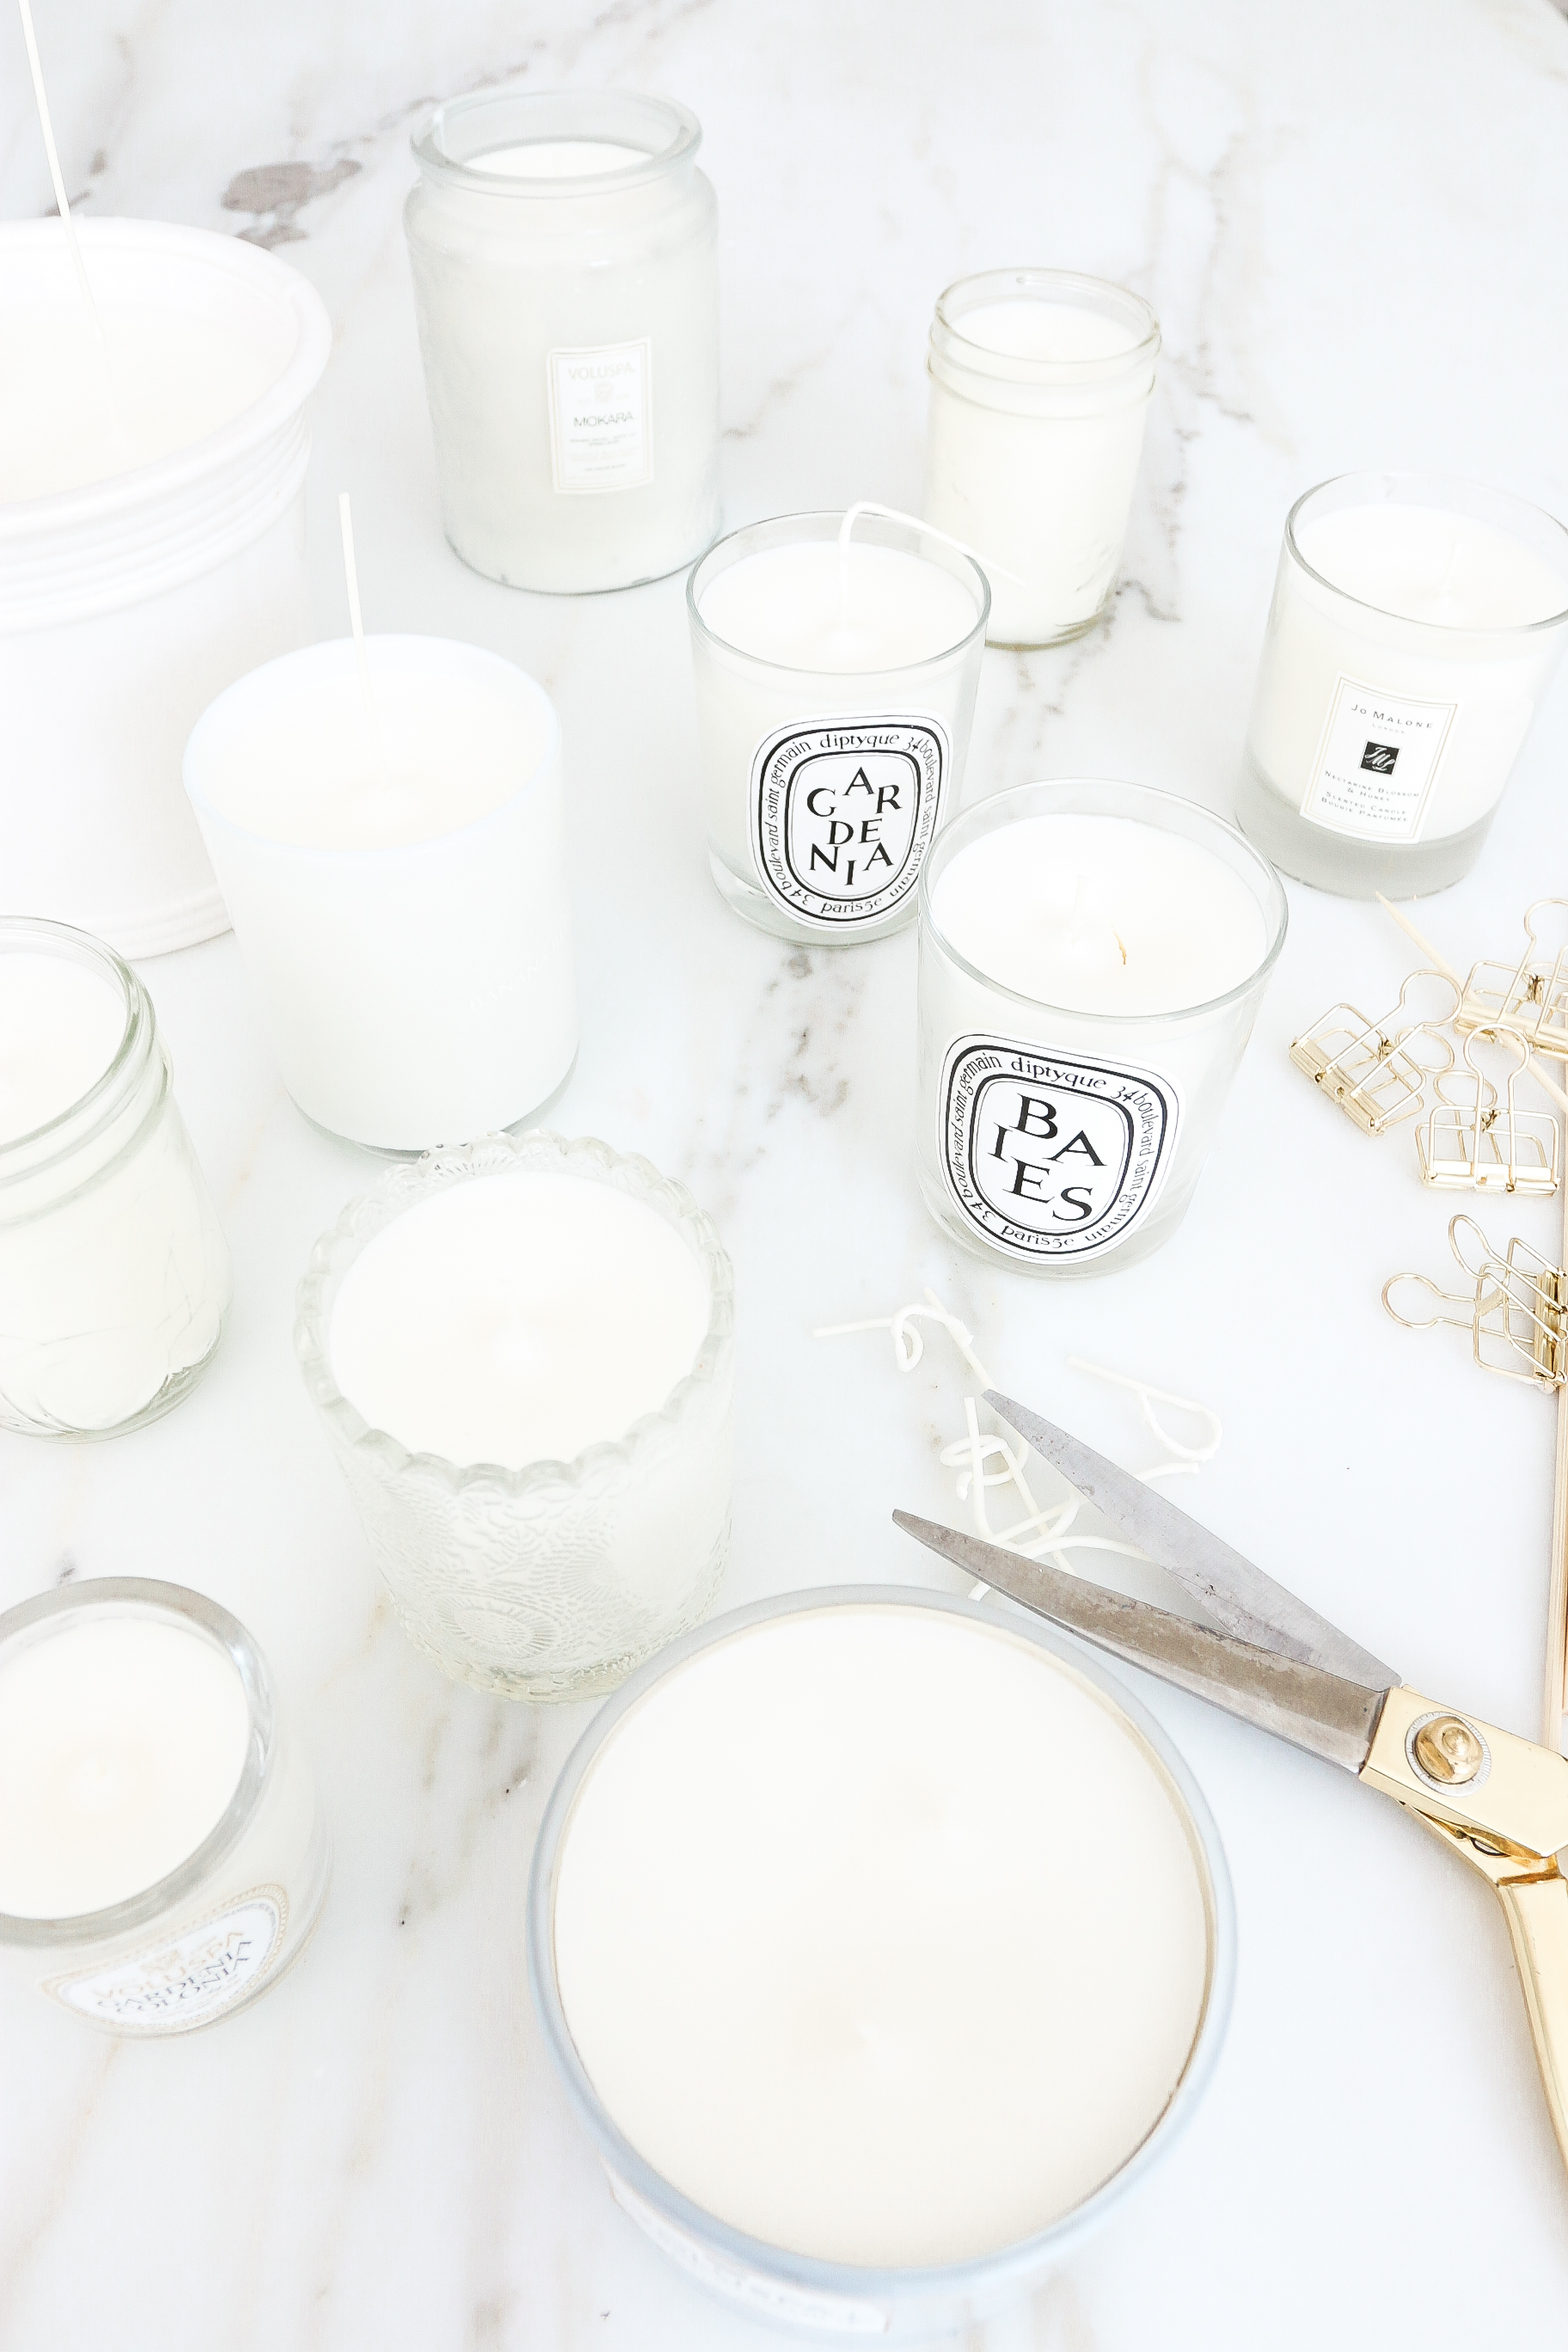 DIY Soy Candle refill How to get wax out of your candle jars Monika Hibbs